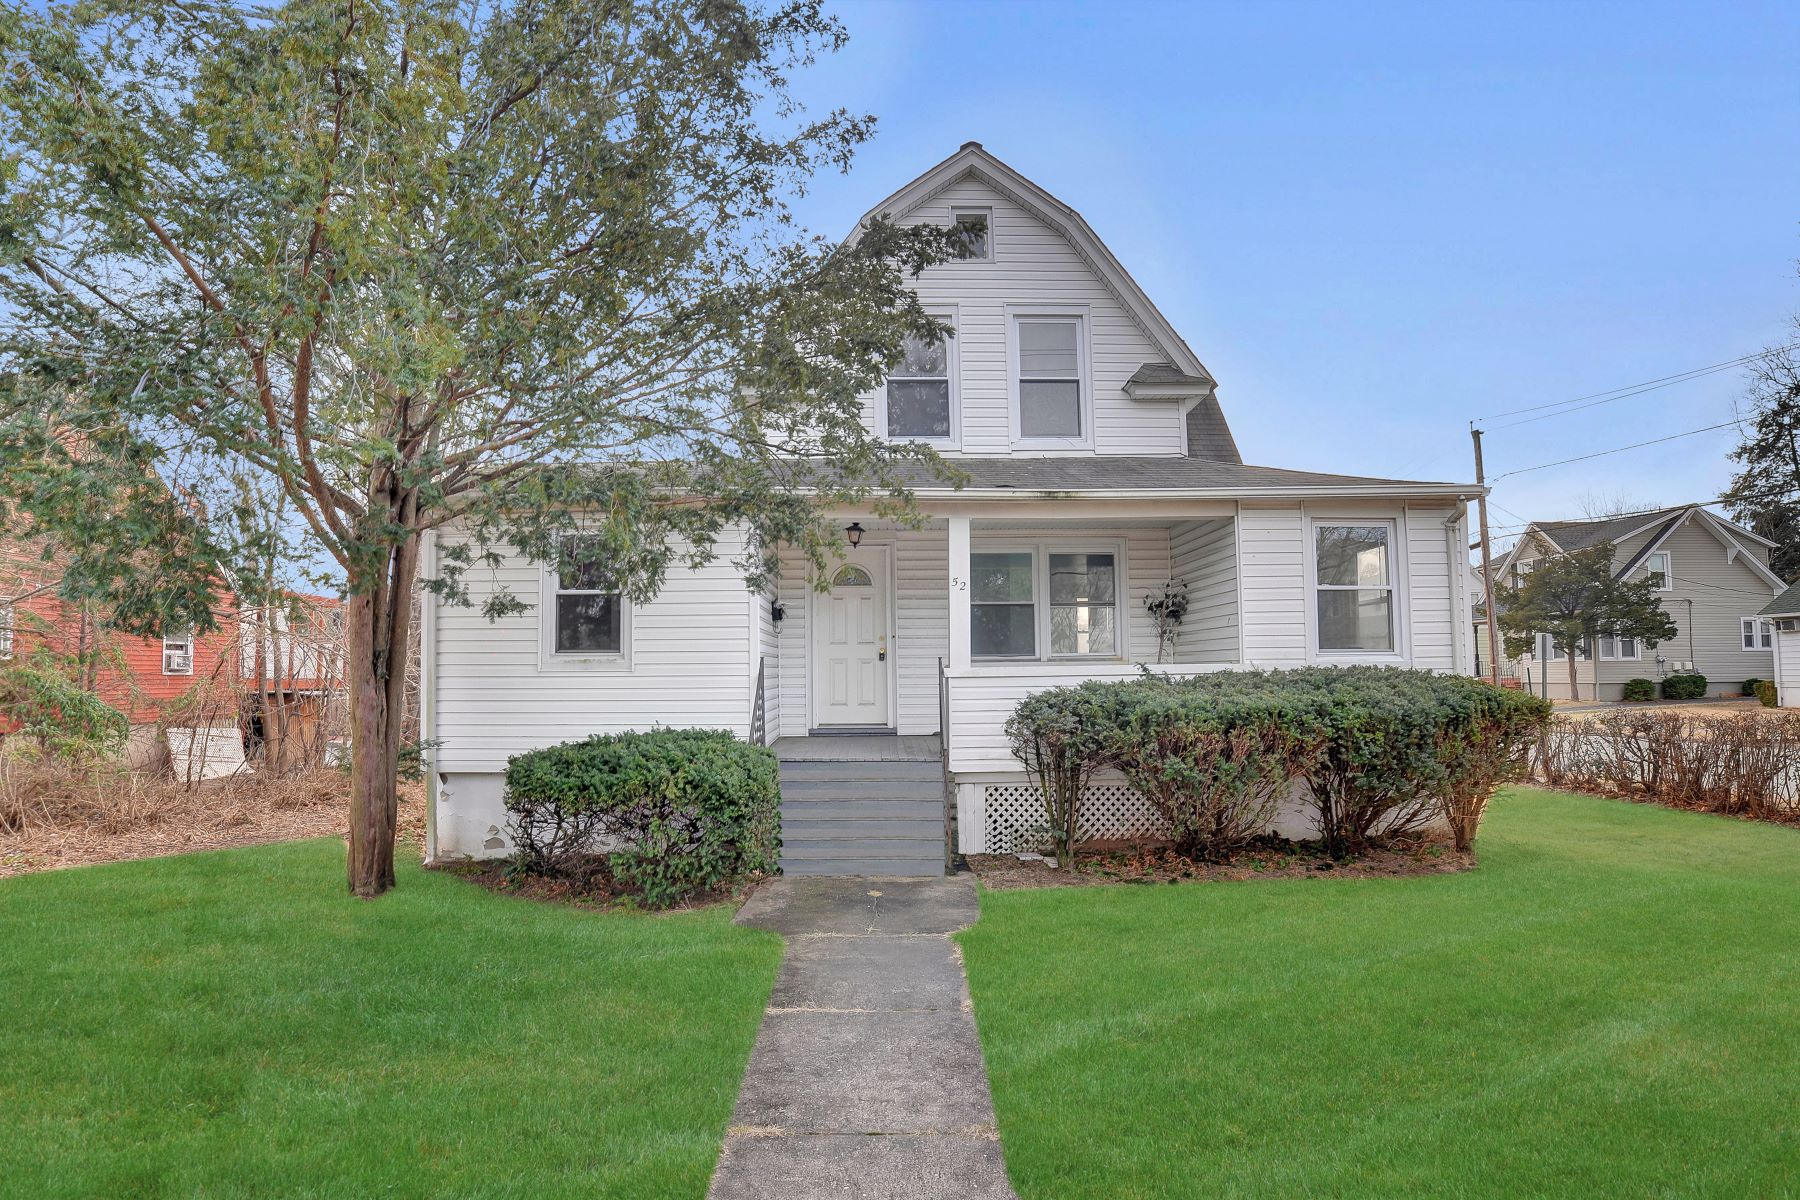 Single Family Home for Sale at Spacious Colonial 52 W Passaic St, Maywood, New Jersey 07607 United States